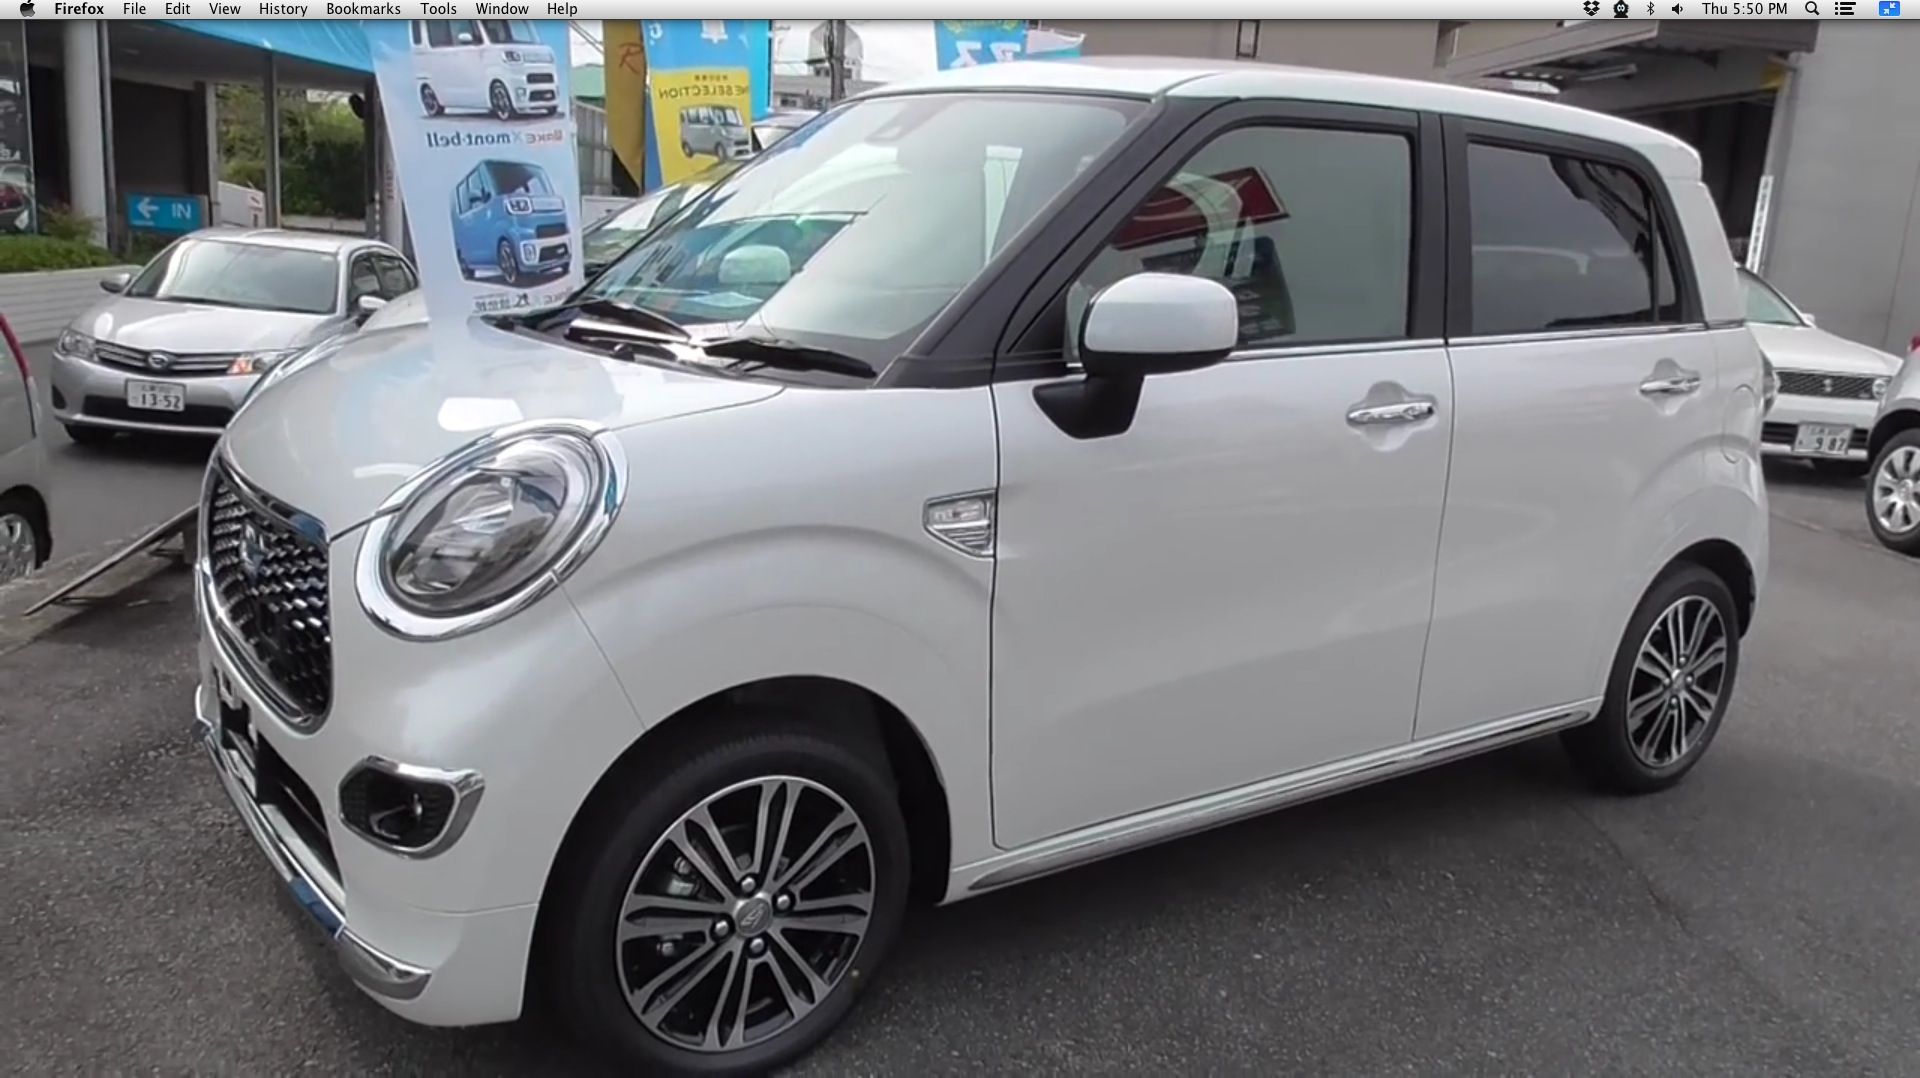 Daihatsu New Cast Style G Saii Is A Shrunken Mini Cooper From An